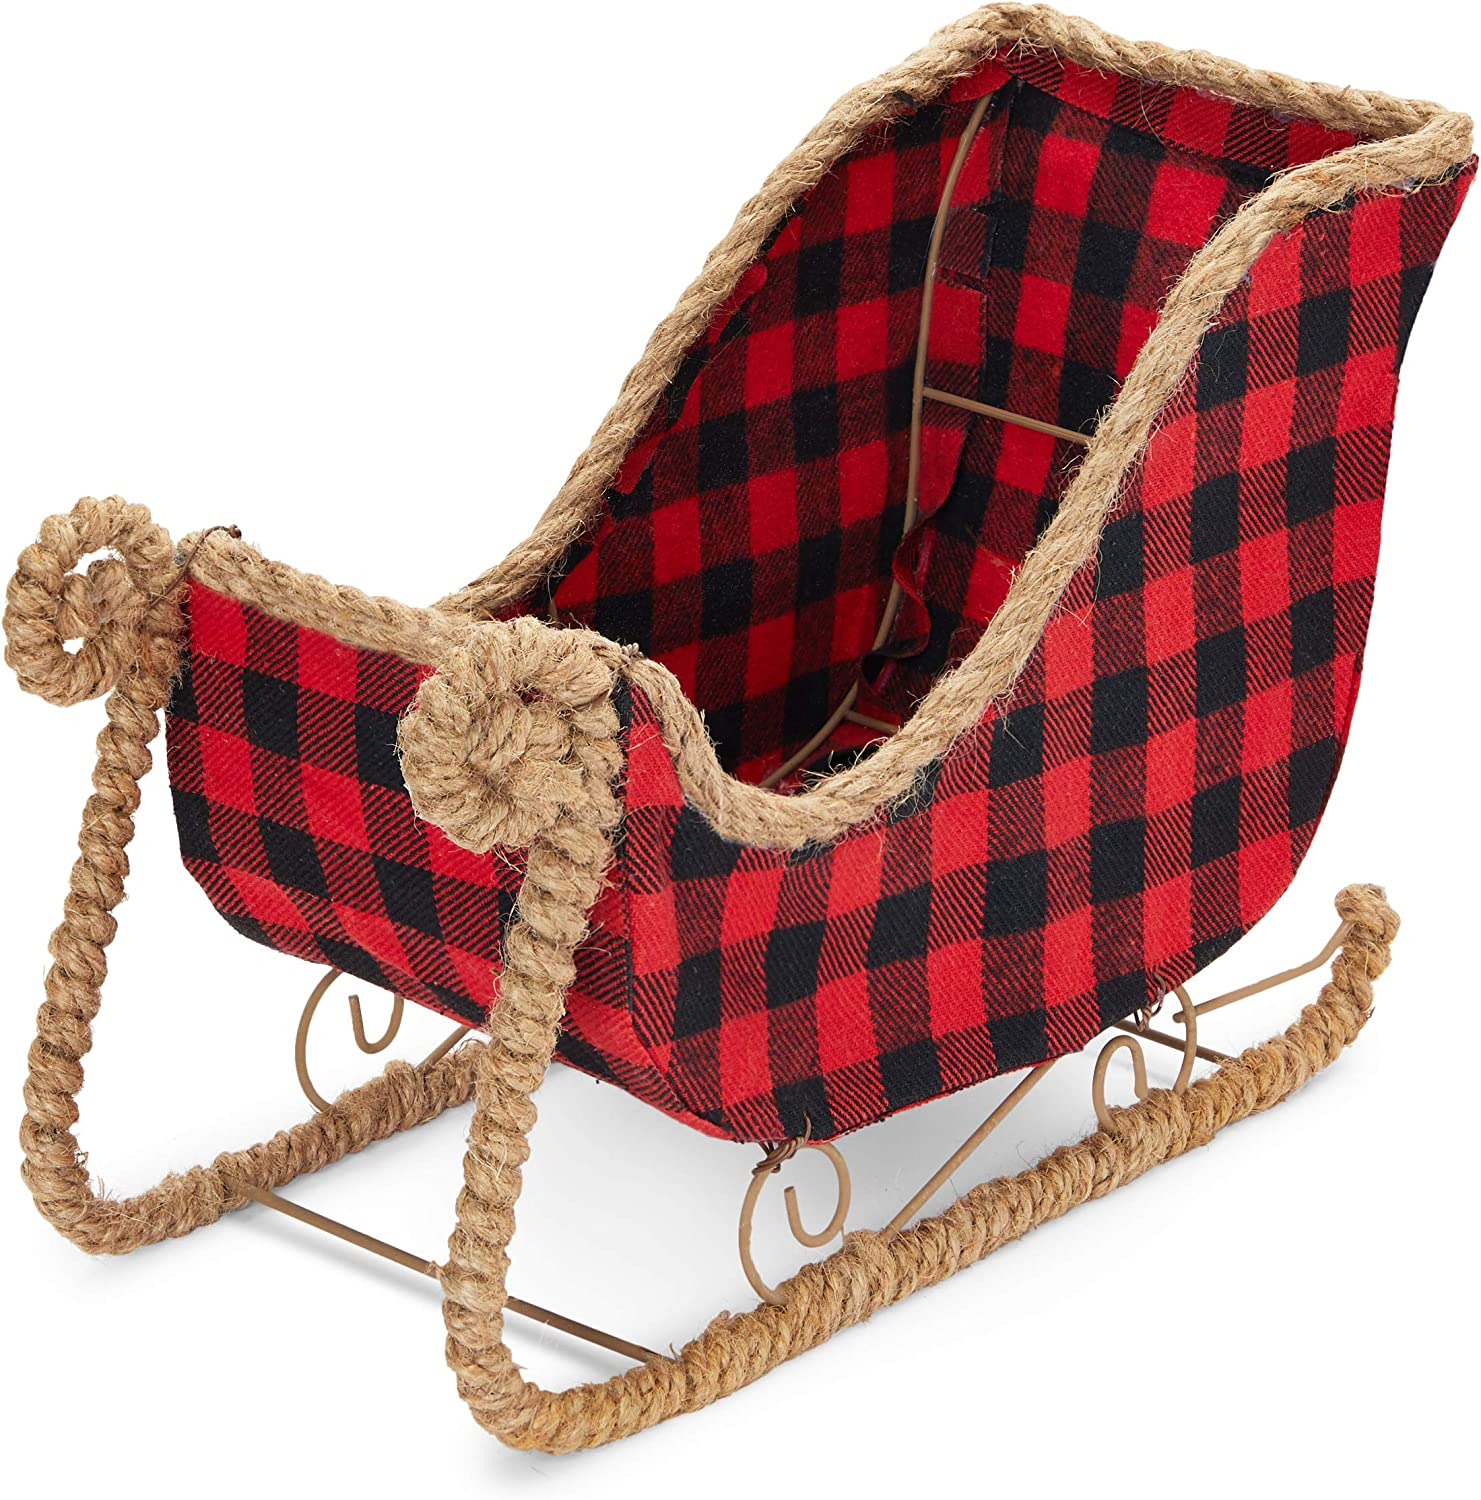 Okuna Outpost Small Santa Claus Sleigh for Christmas, Red Buffalo Plaid (11 x 5 x 7.8 in)